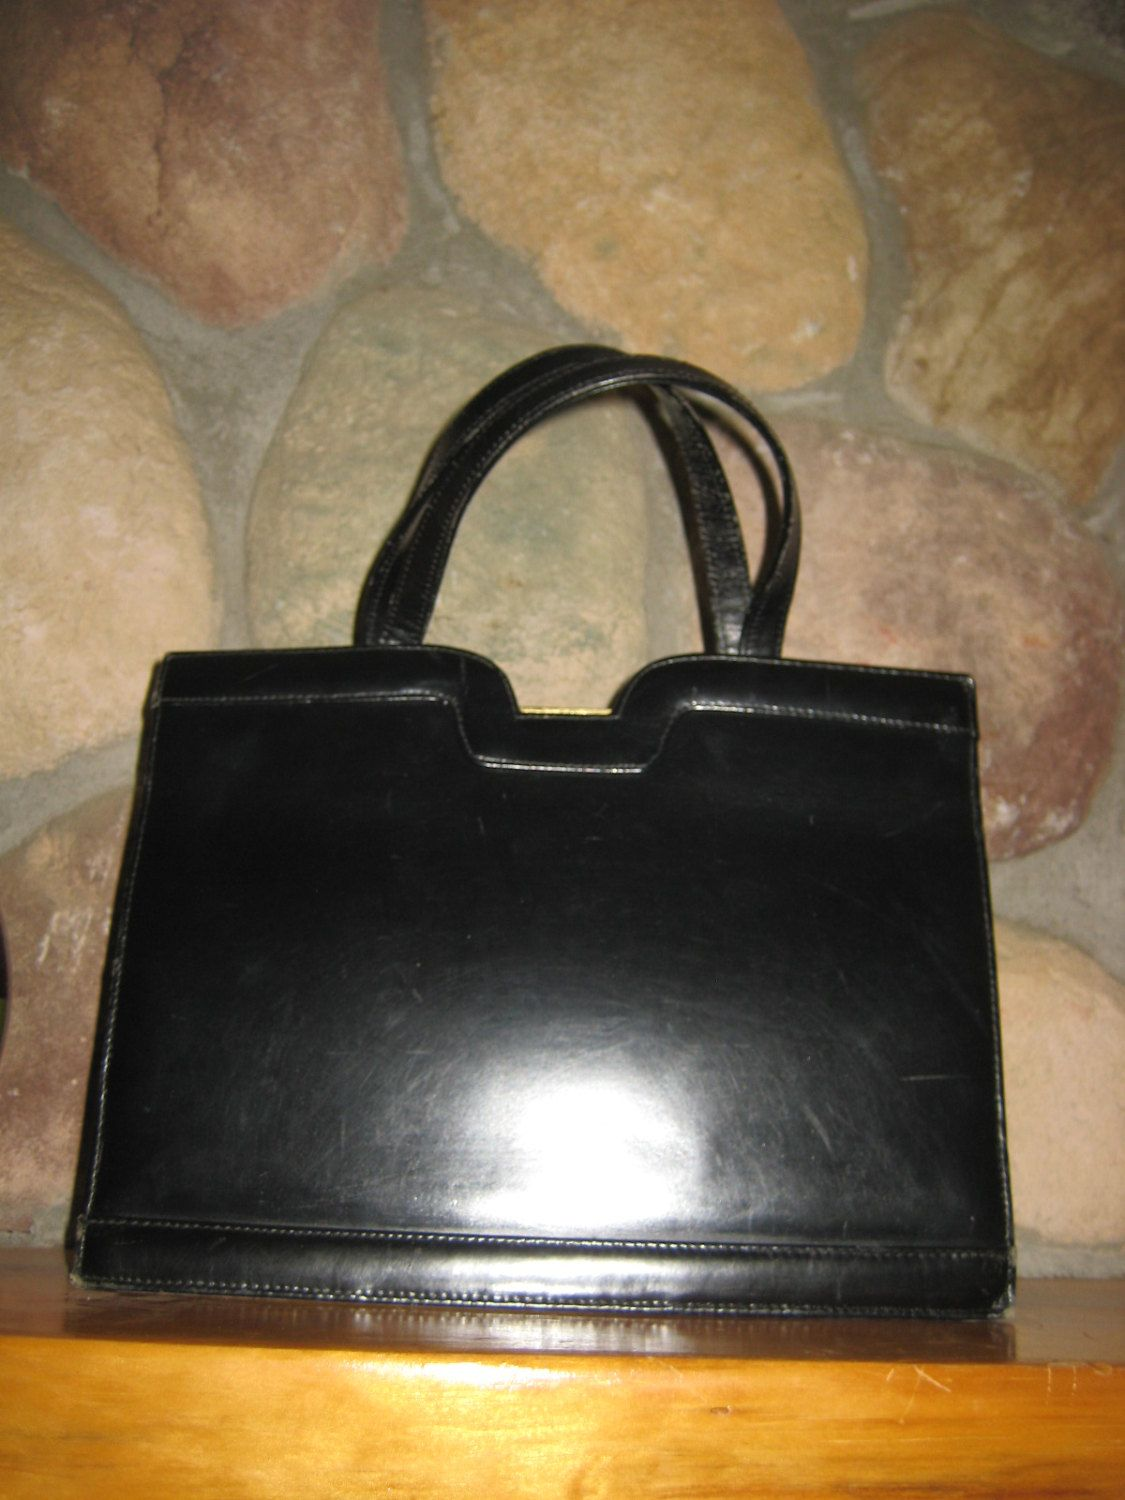 Vintage 1960s Dofan Made In France Black Leather Purse Free Shipping By Piffy500 On Etsy